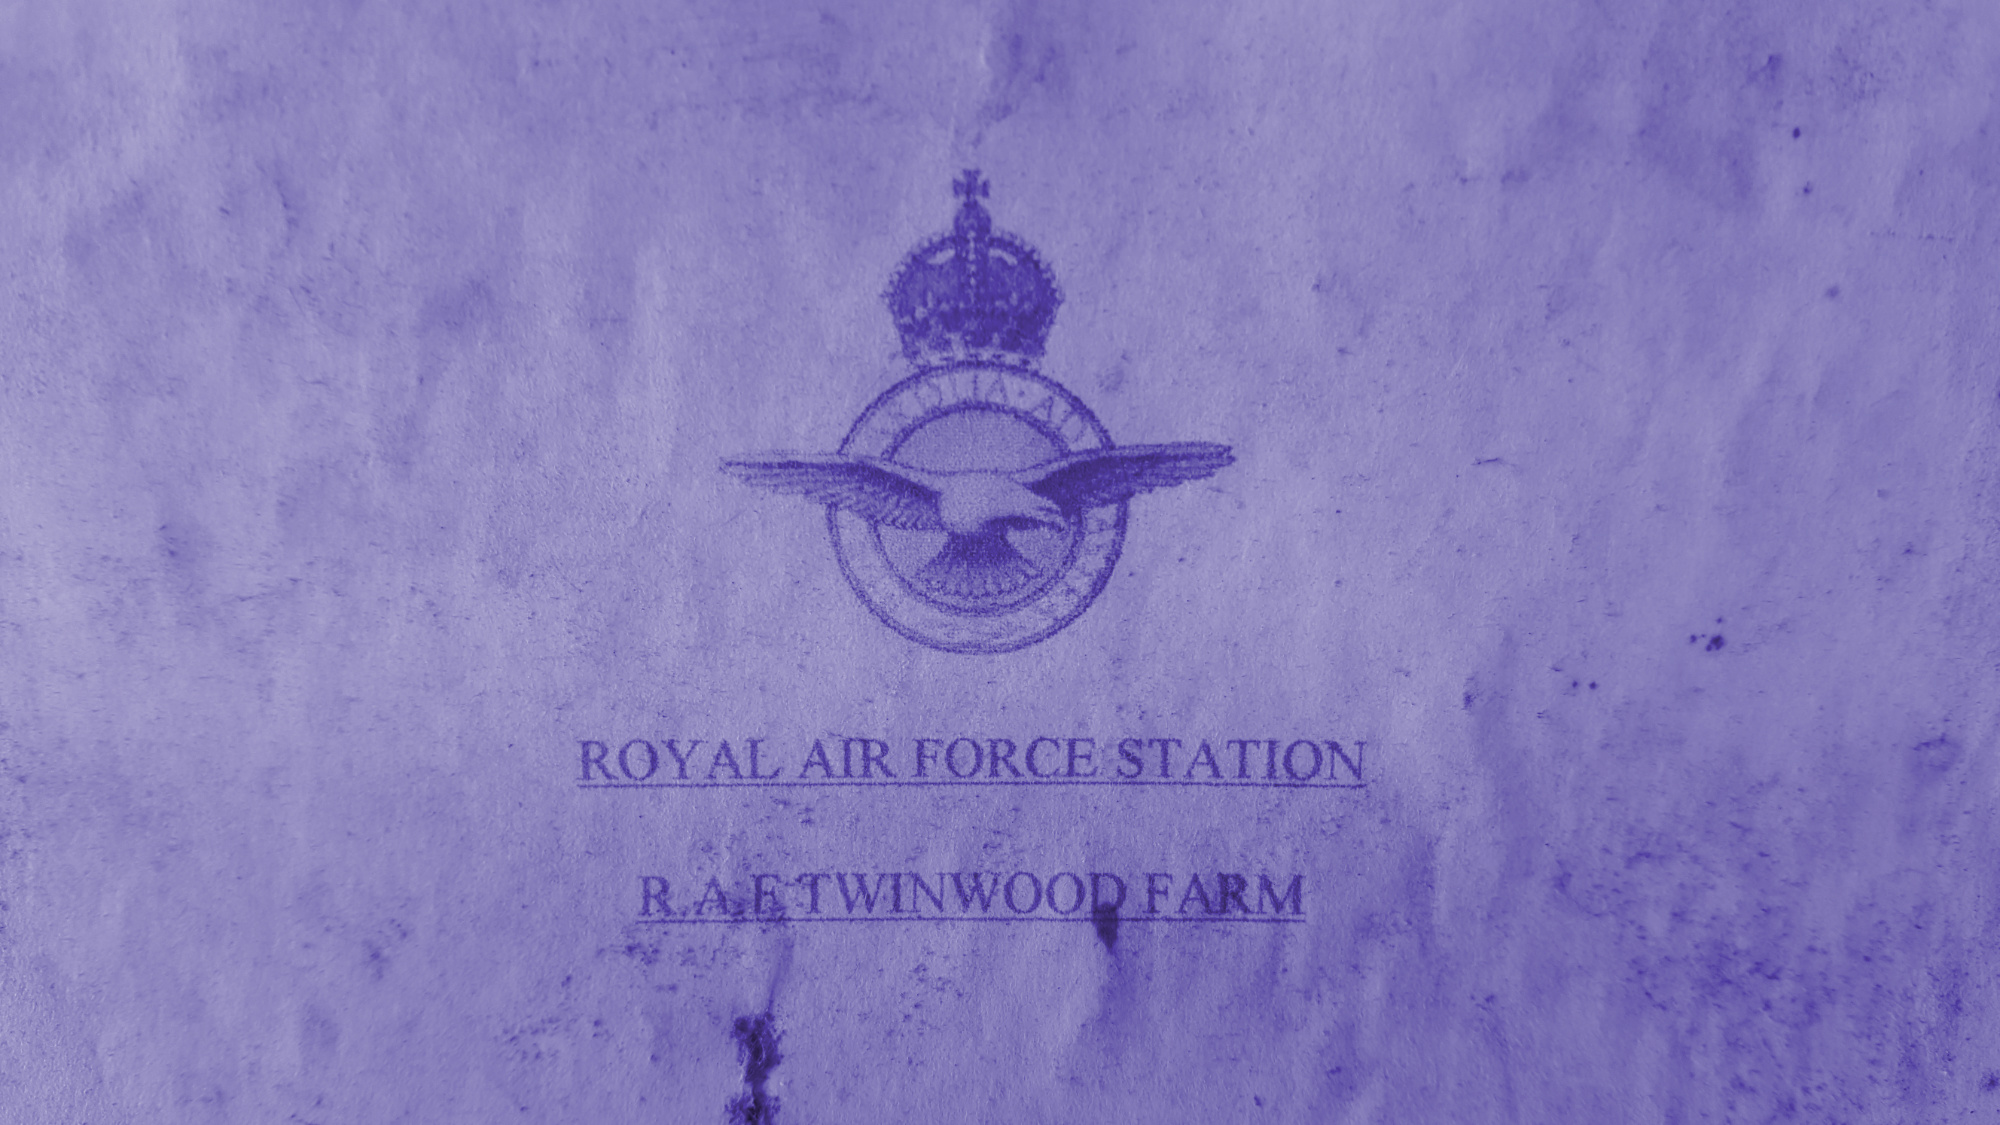 Episode 21 – RAF Twinwood